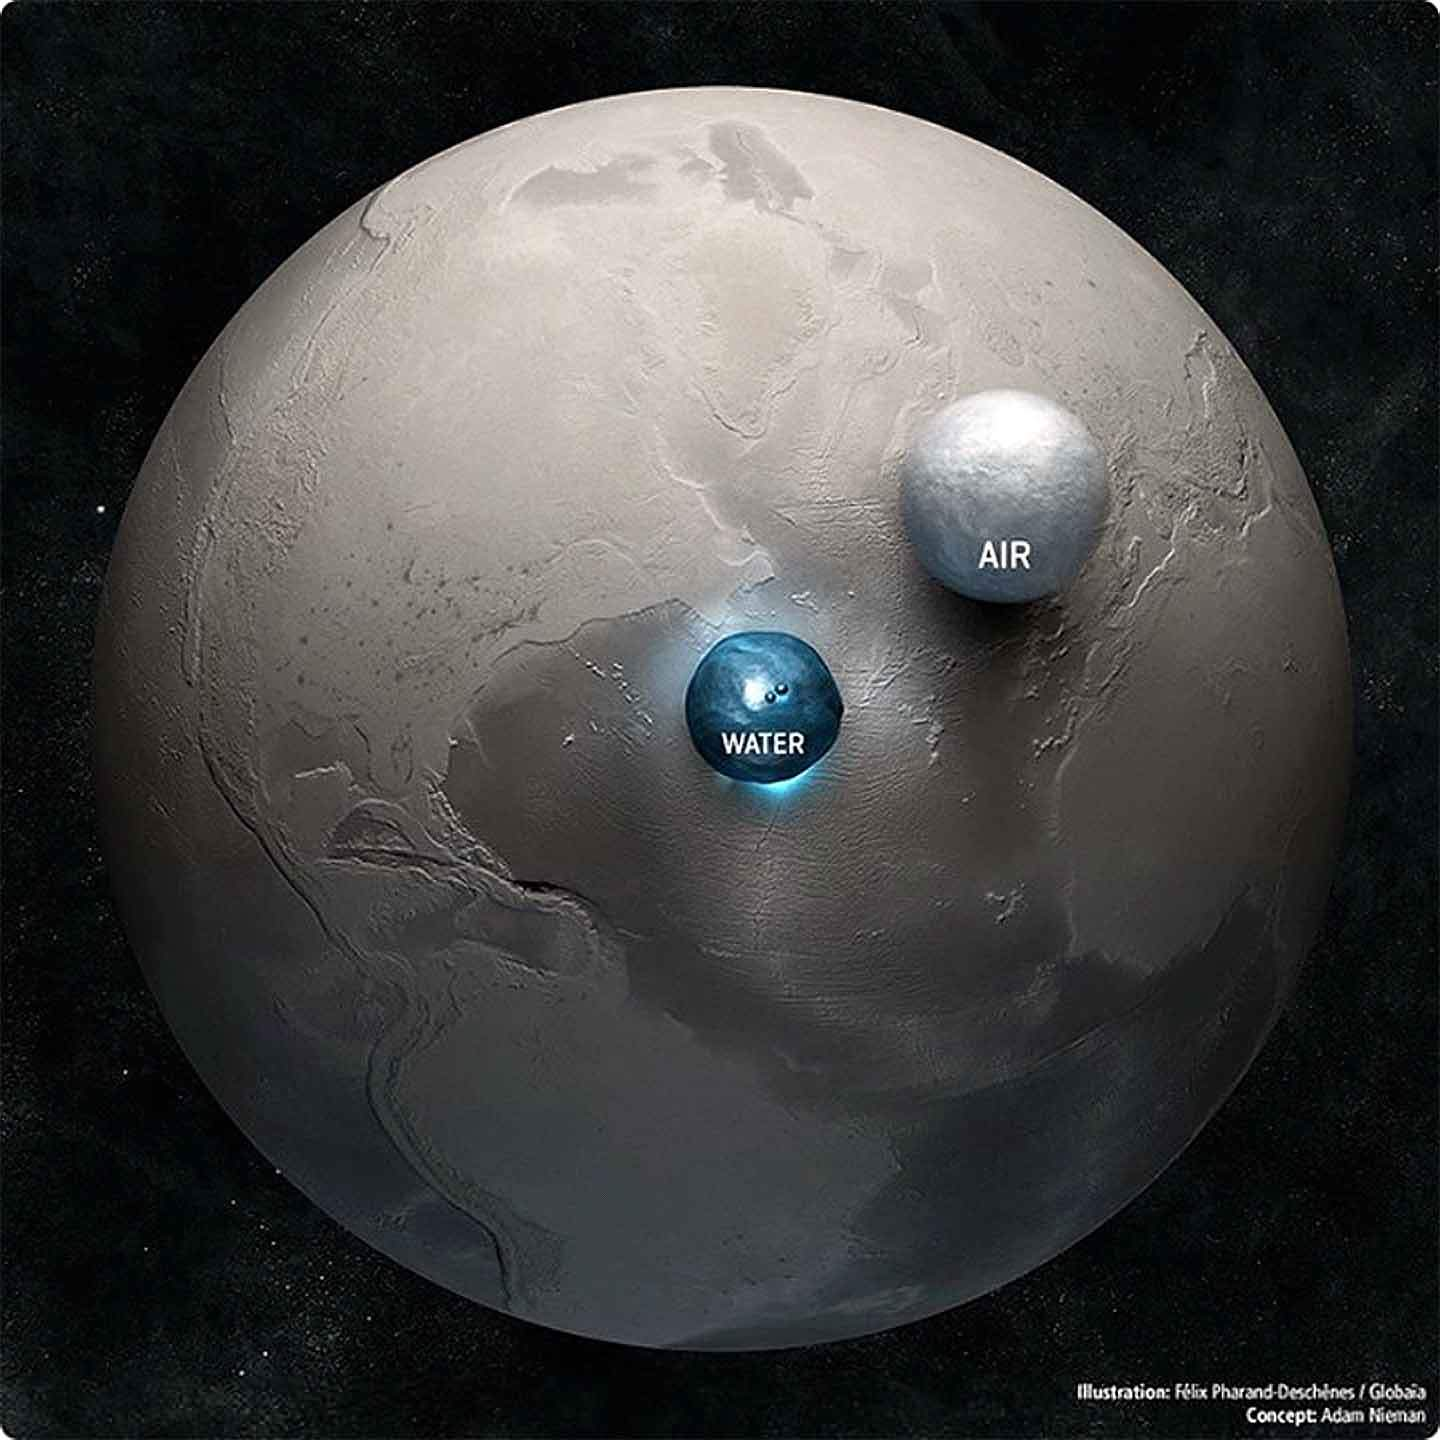 earth compared to all of its water and air